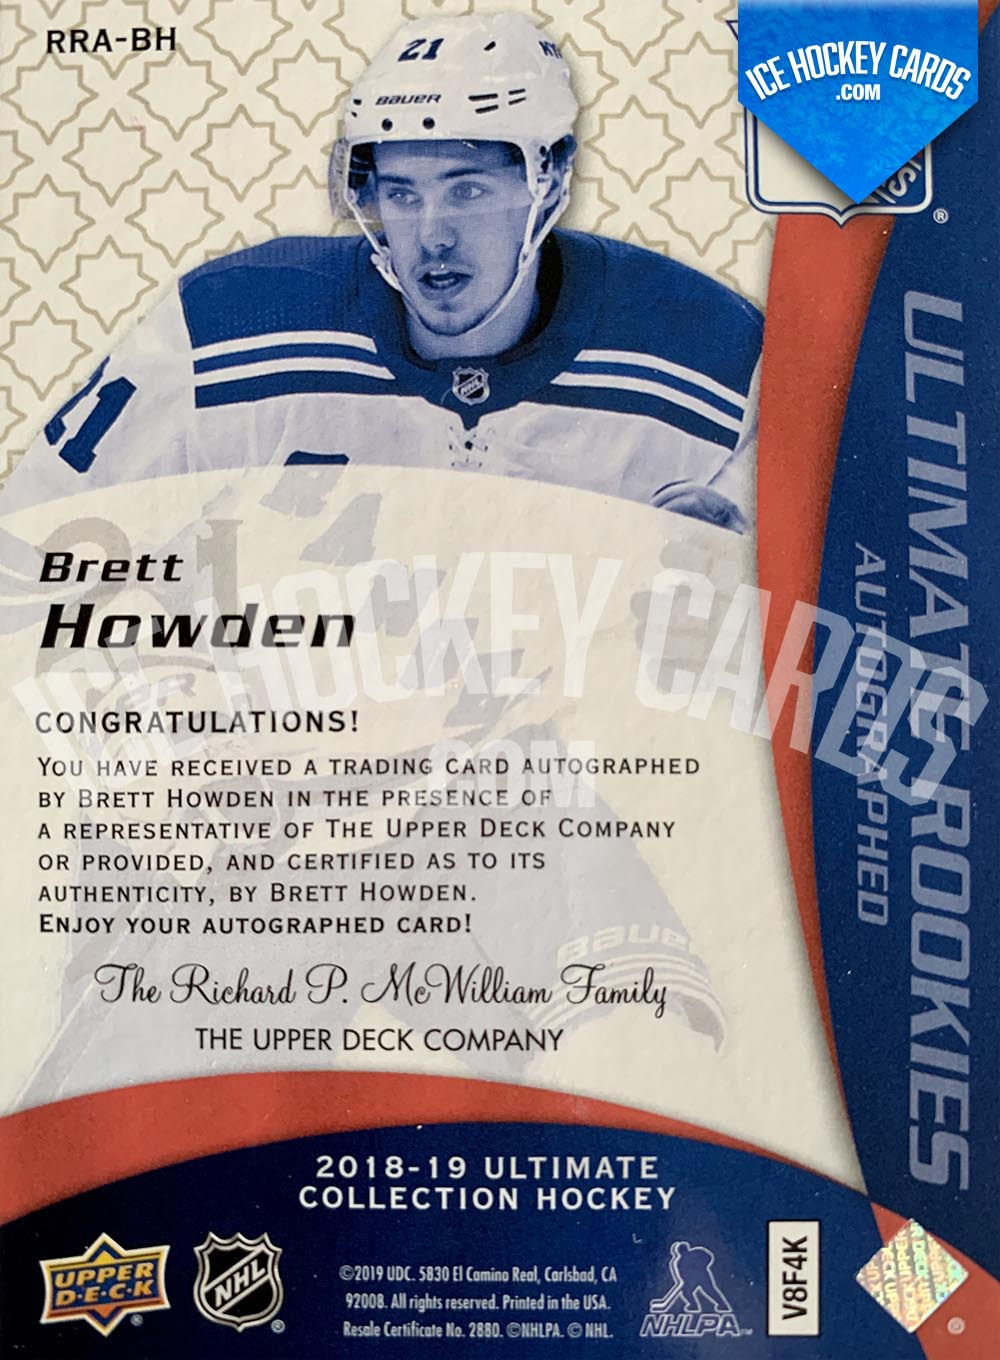 Upper Deck - Ultimate Collection 2018-19 - Brett Howden Autographed Ultimate Rookies Card back